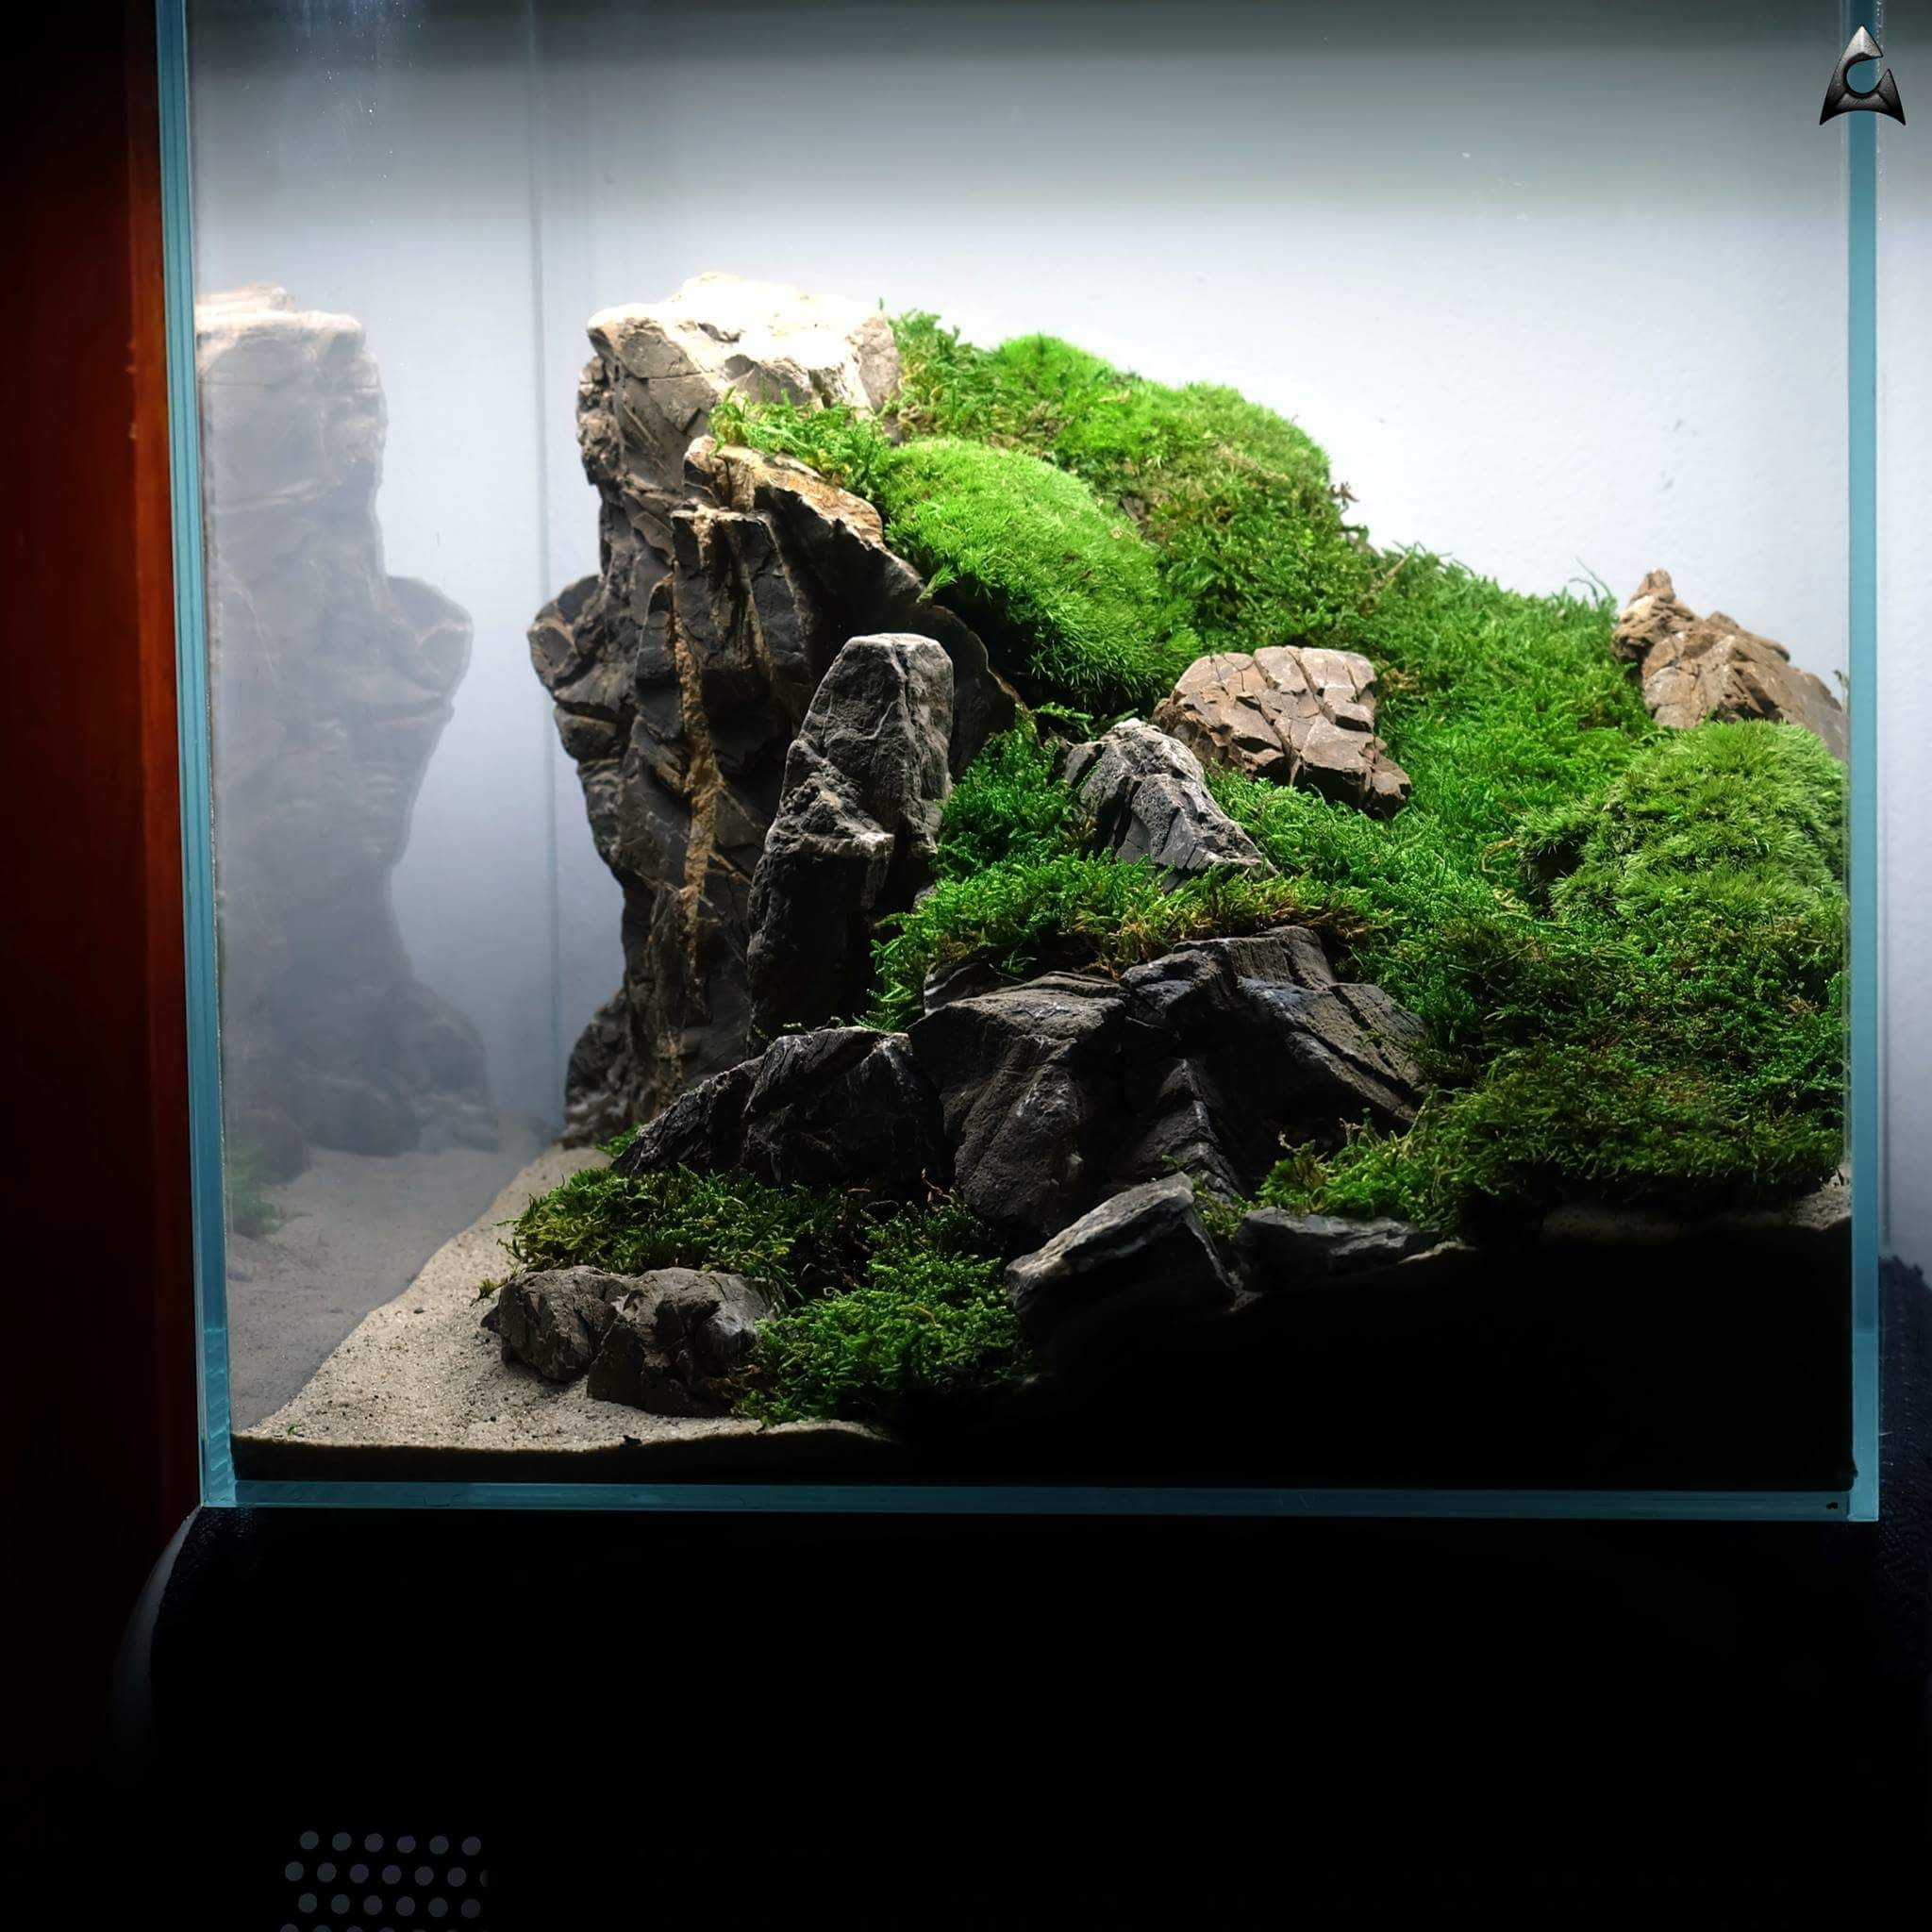 Diy Fish Tank Decorations Themes Aquascaping Fresh Water Decor Ideas Small Aquascaping Homemade Creative Aquascap Aquarium Landscape Diy Fish Tank Aquascape